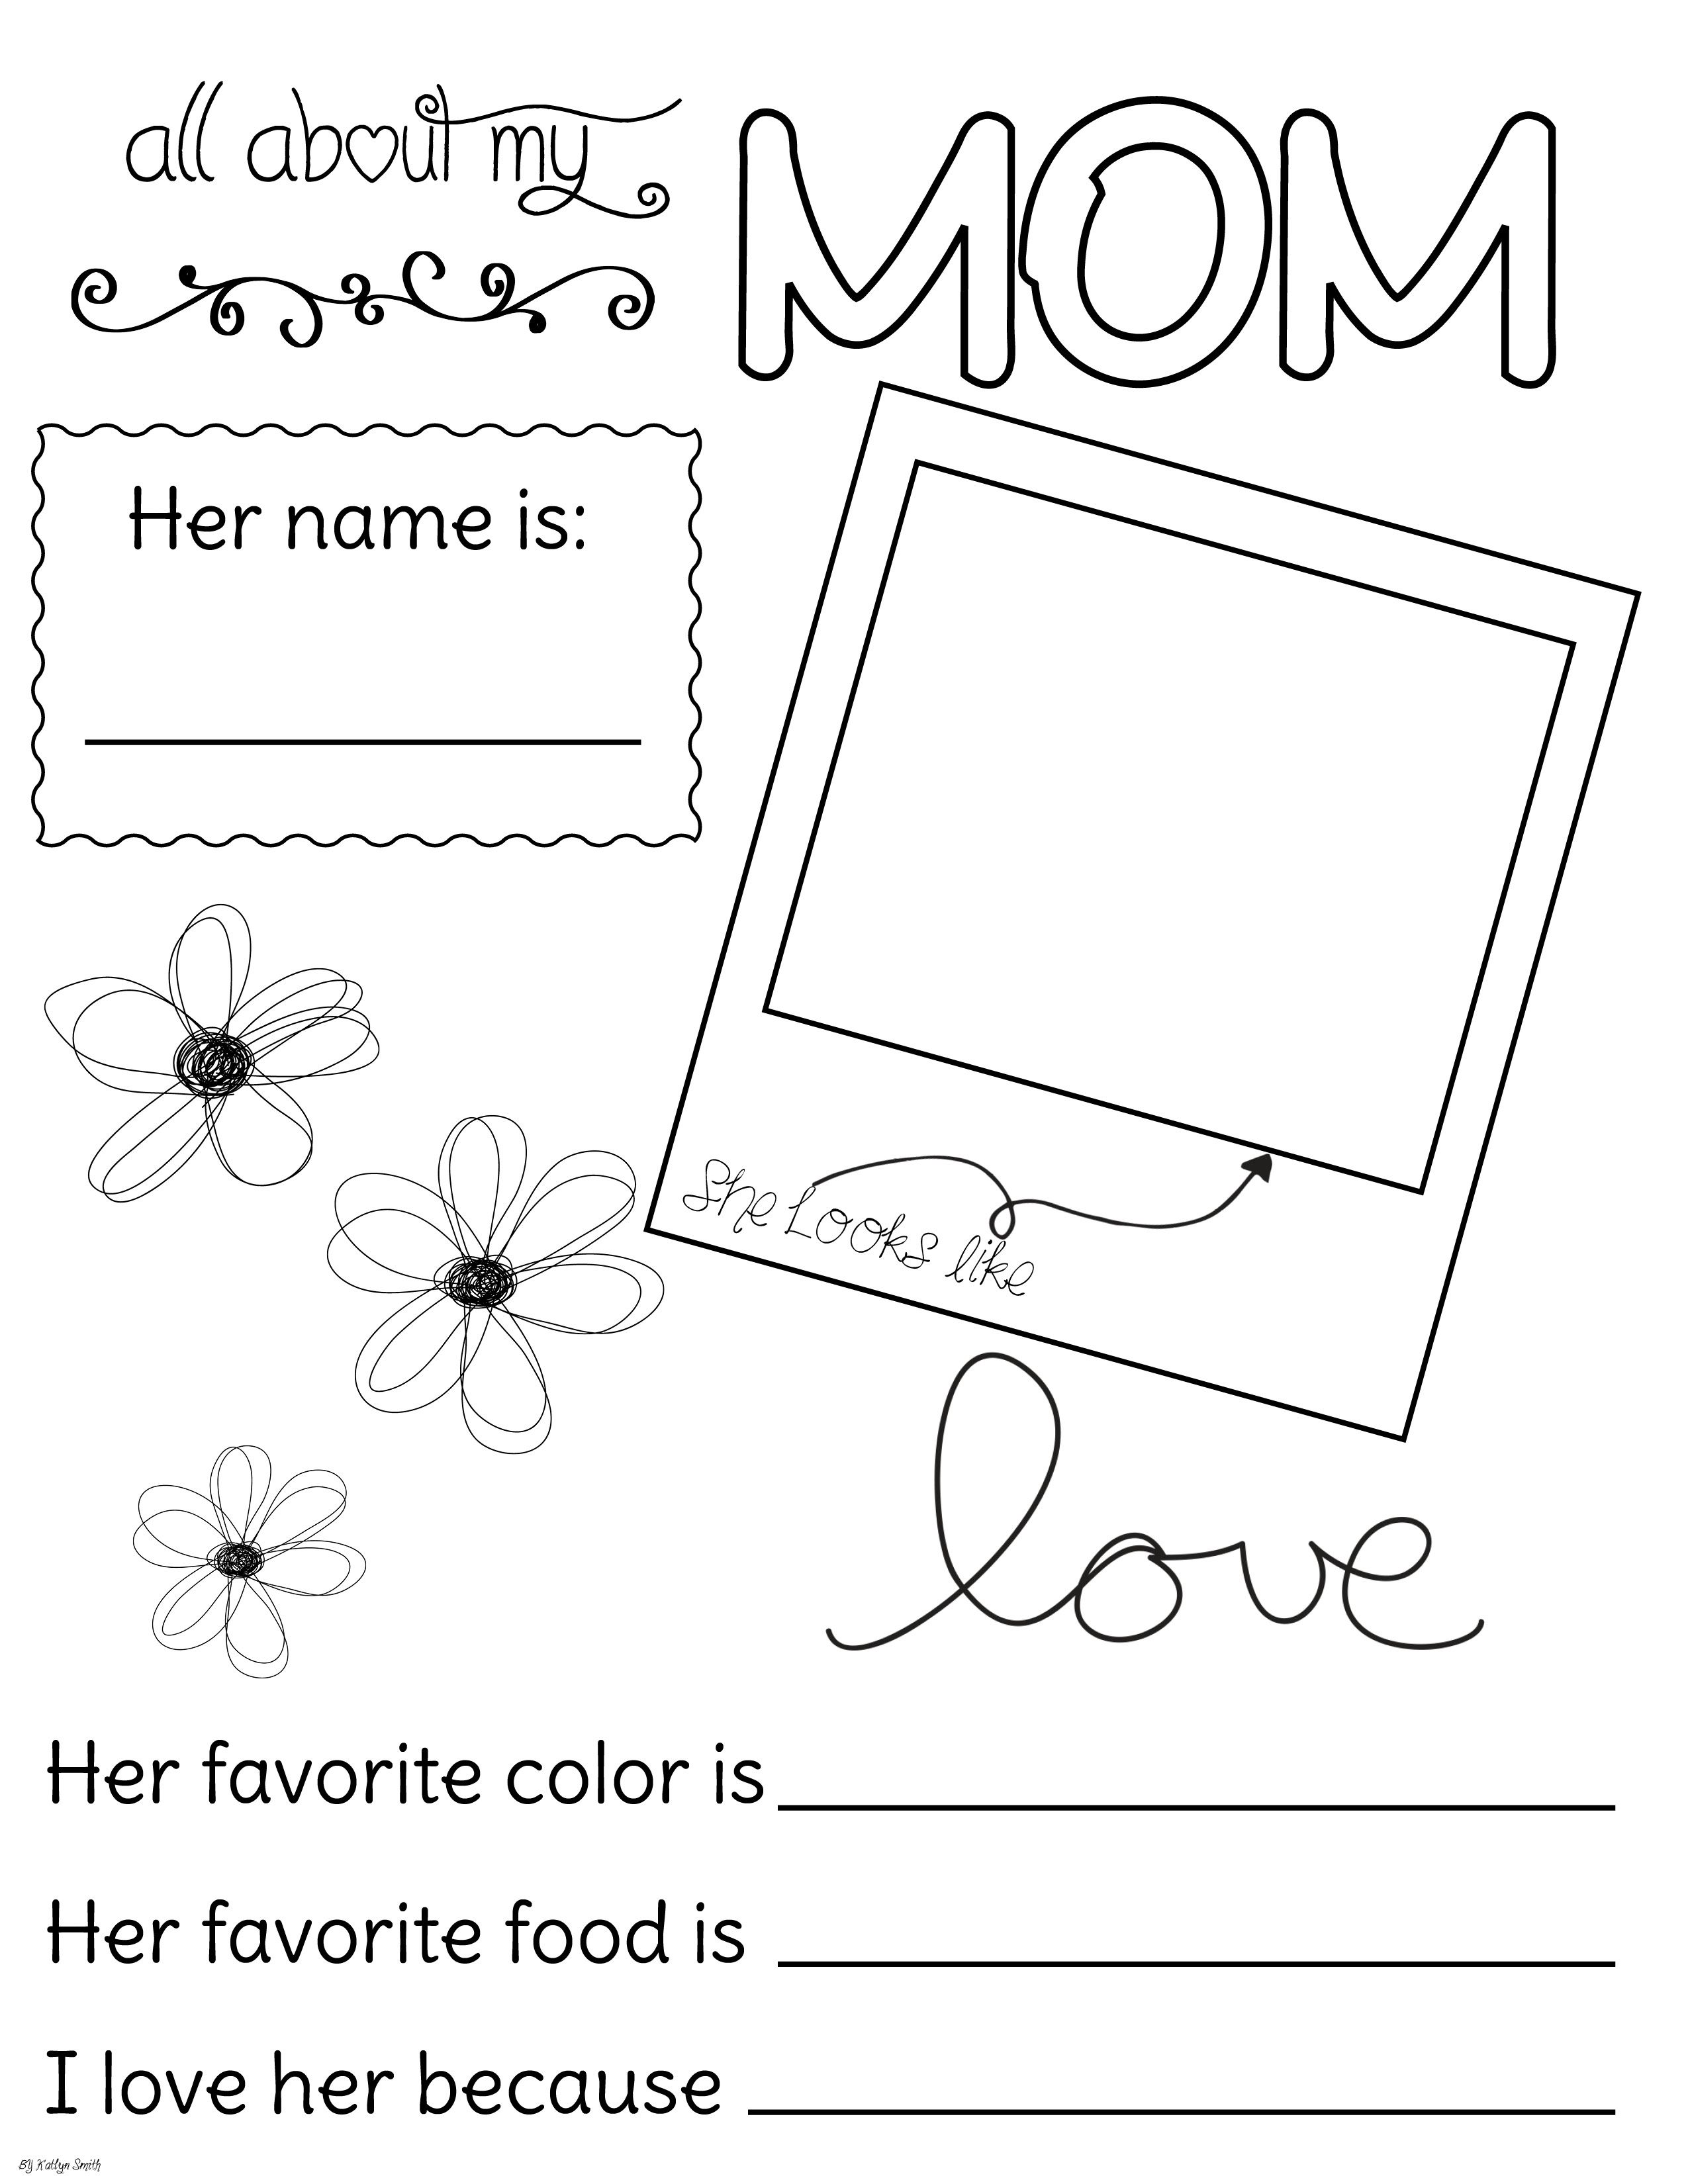 all about my mom fill out and coloring page mother u0027s day